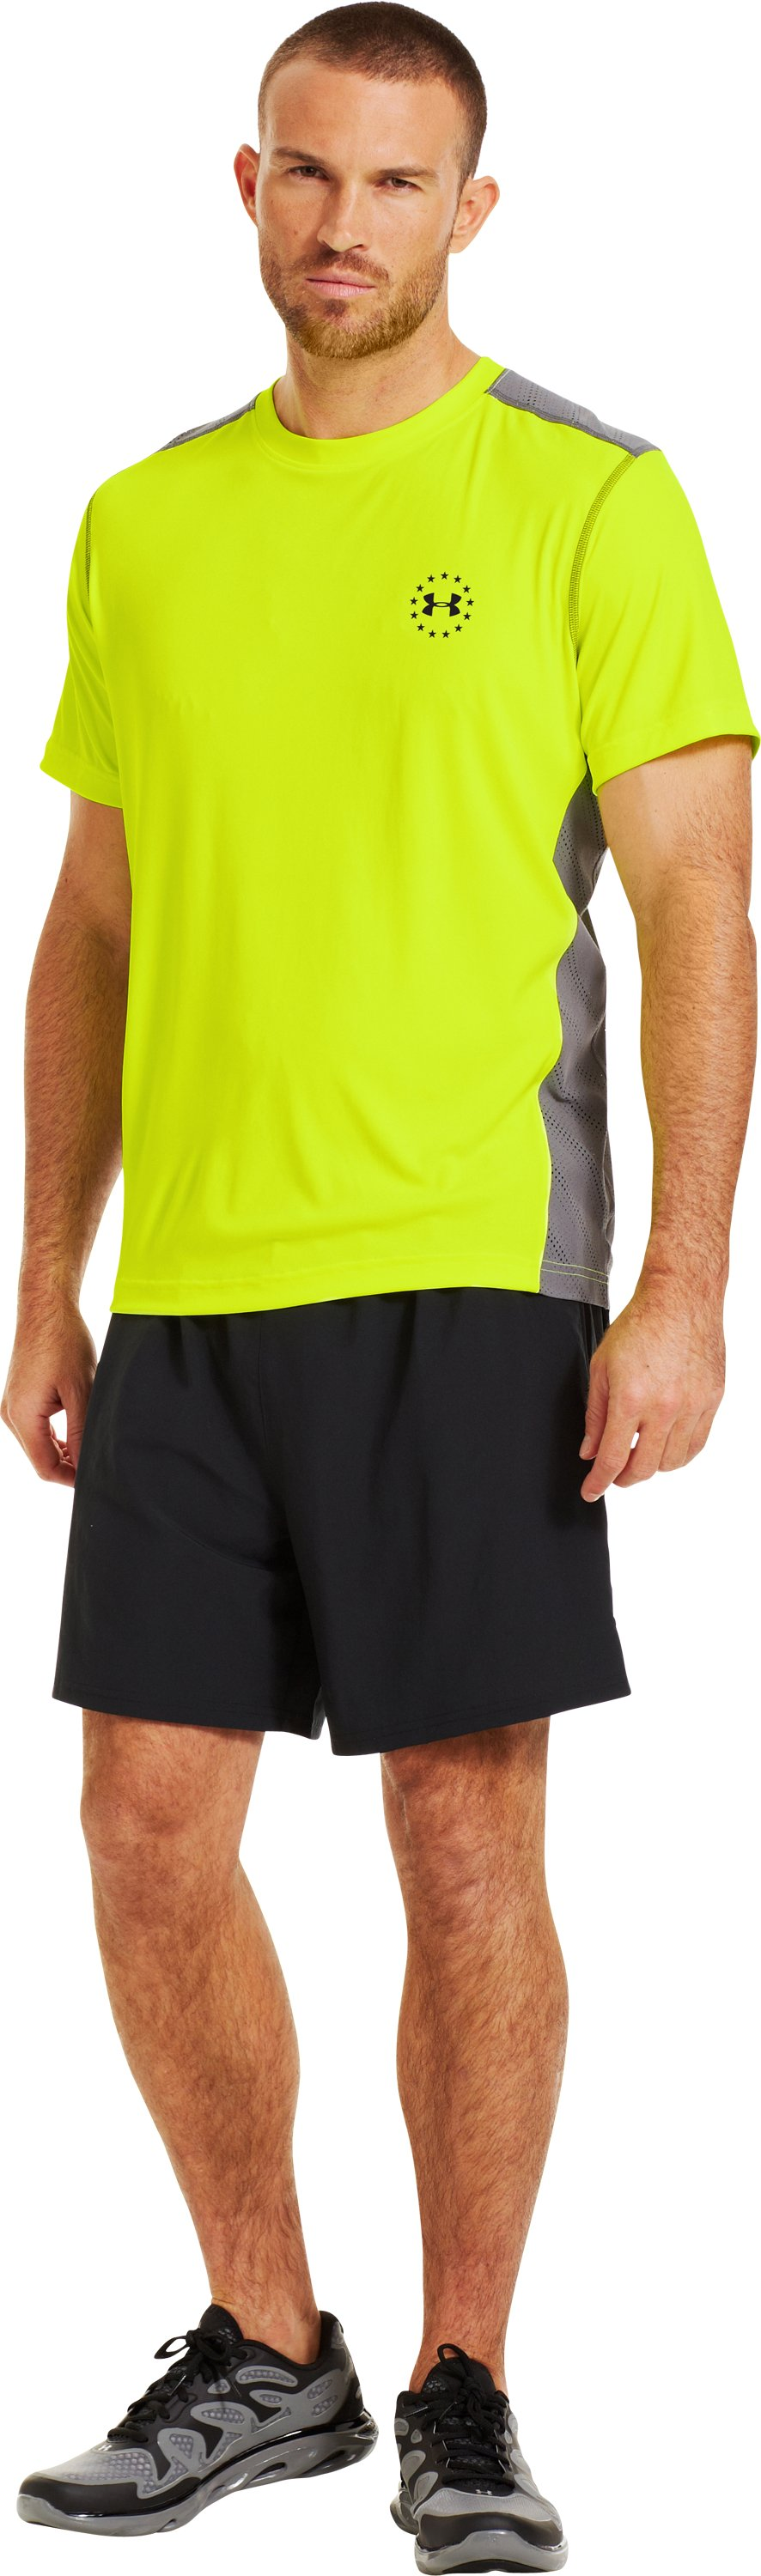 Men's WWP ArmourVent™ Short Sleeve T-Shirt, High-Vis Yellow, Front